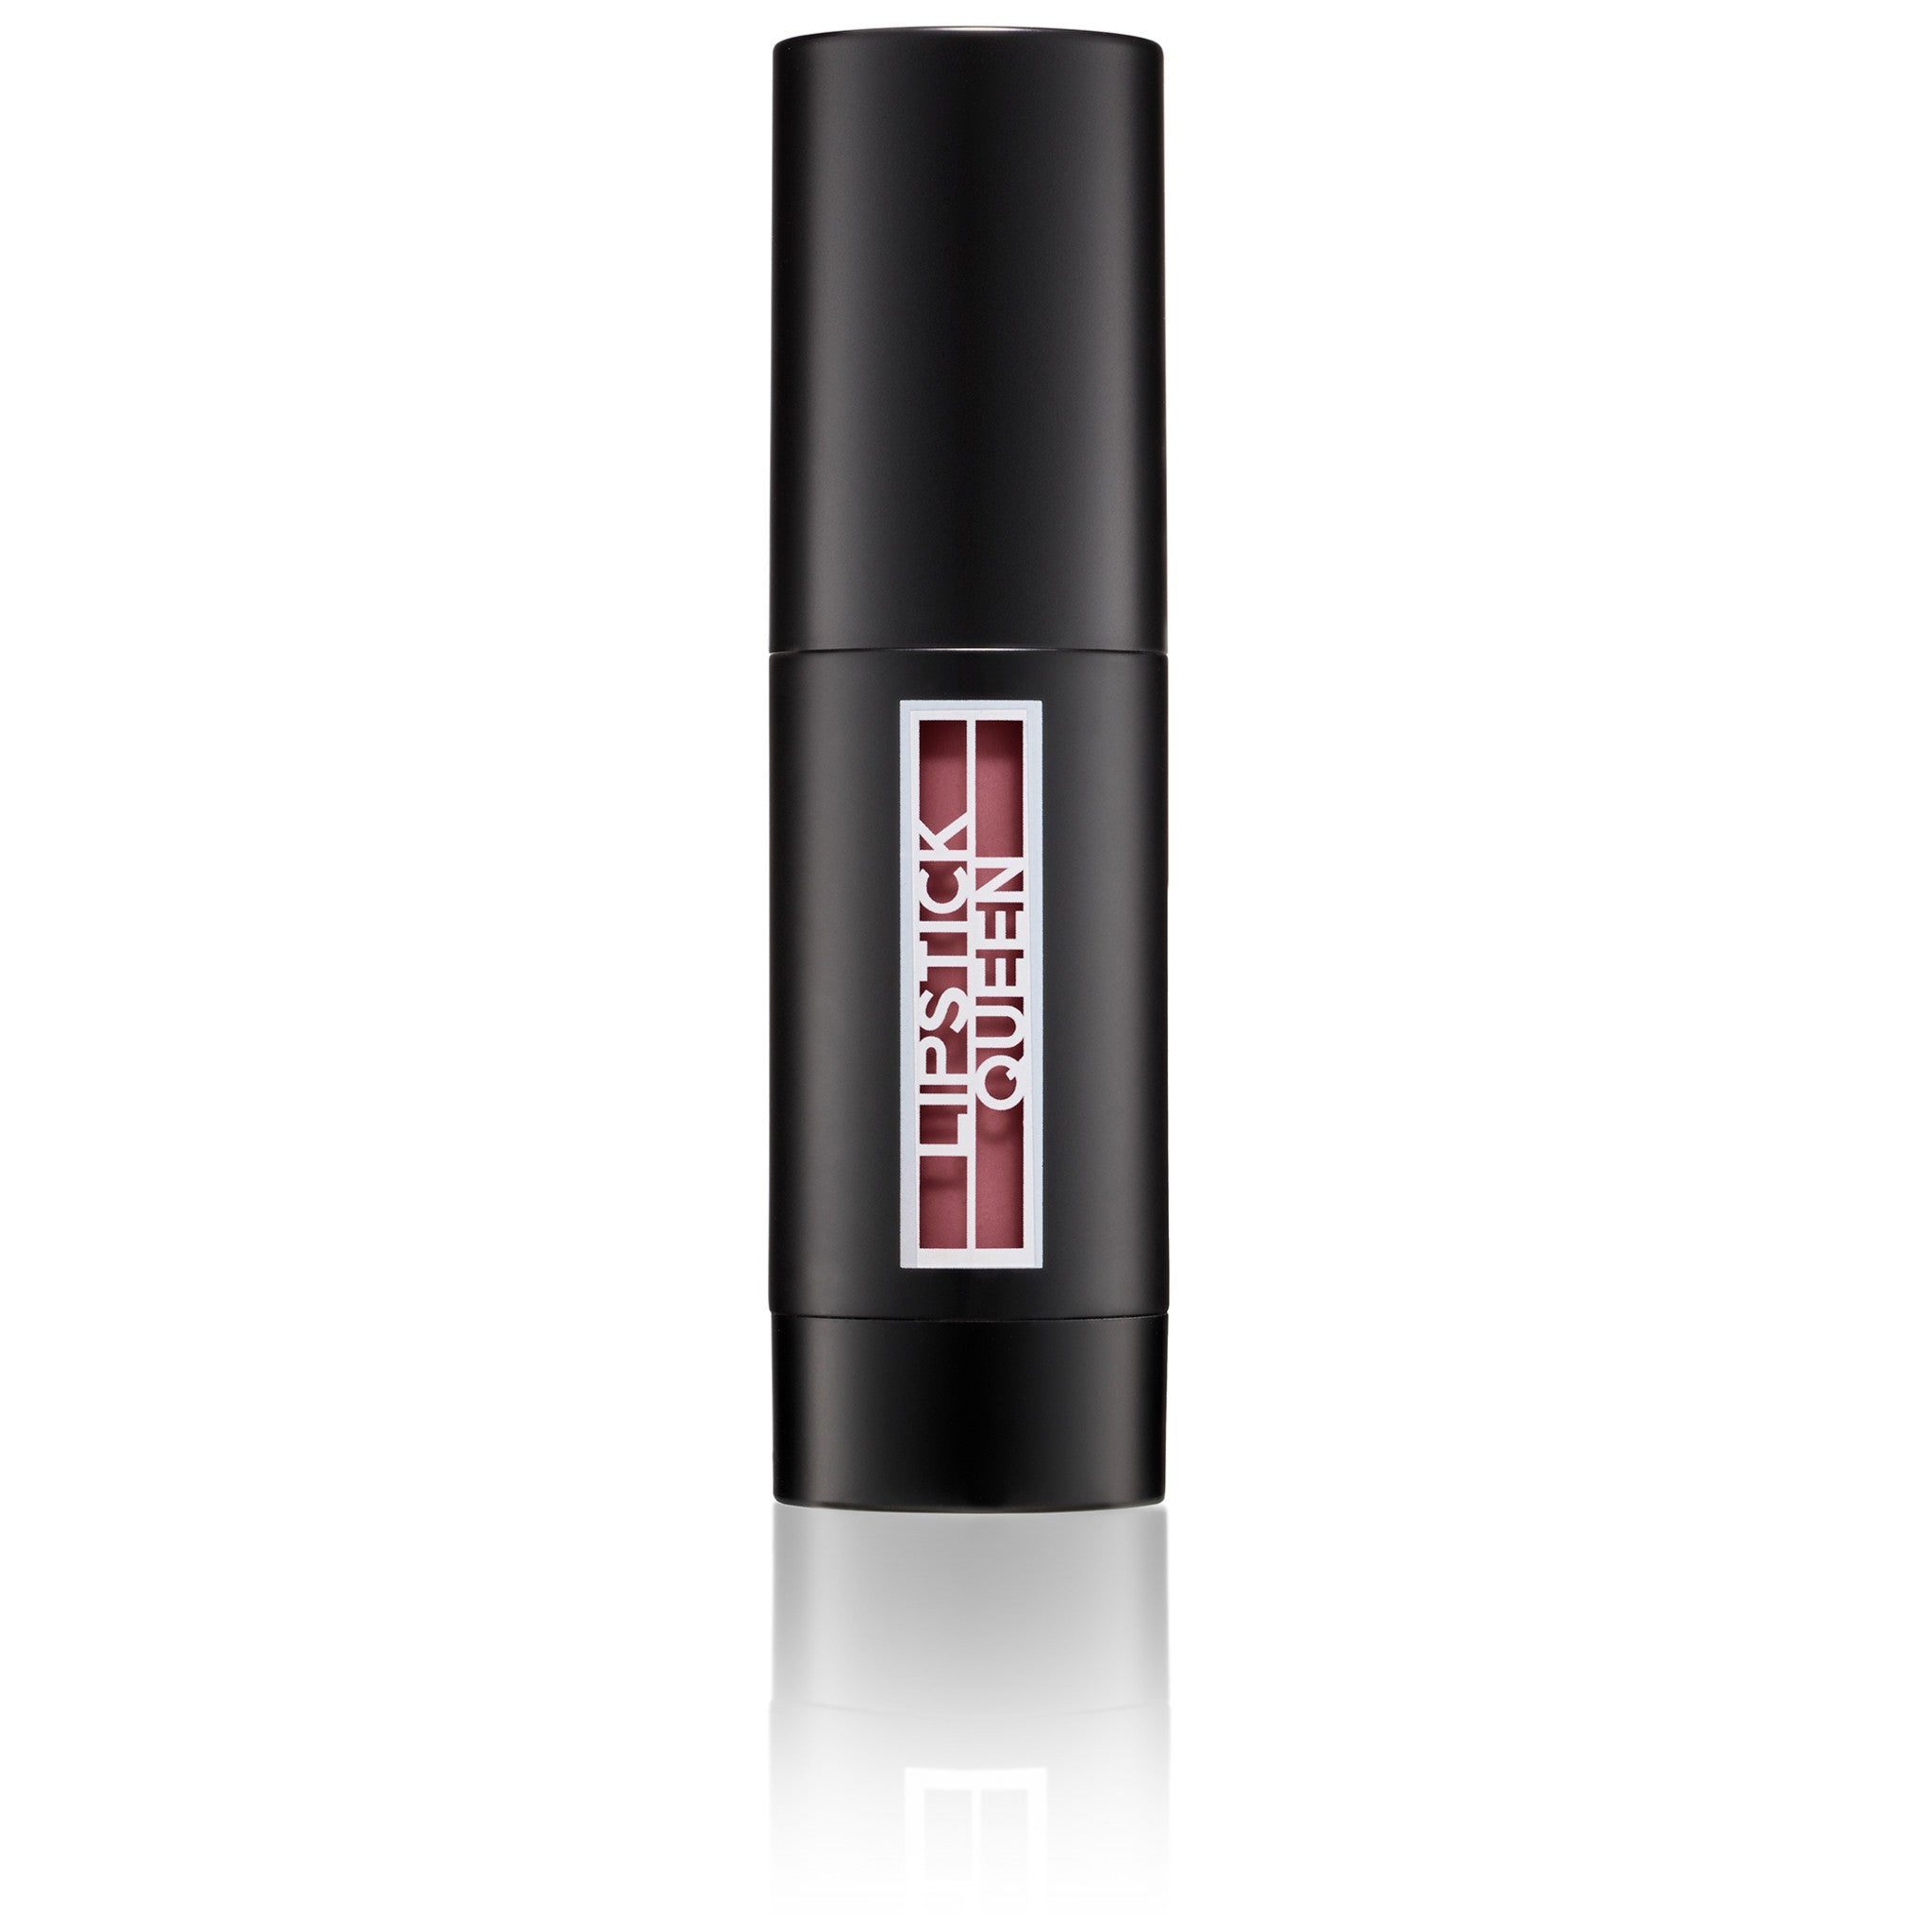 Lipdulgence Lip Mousse